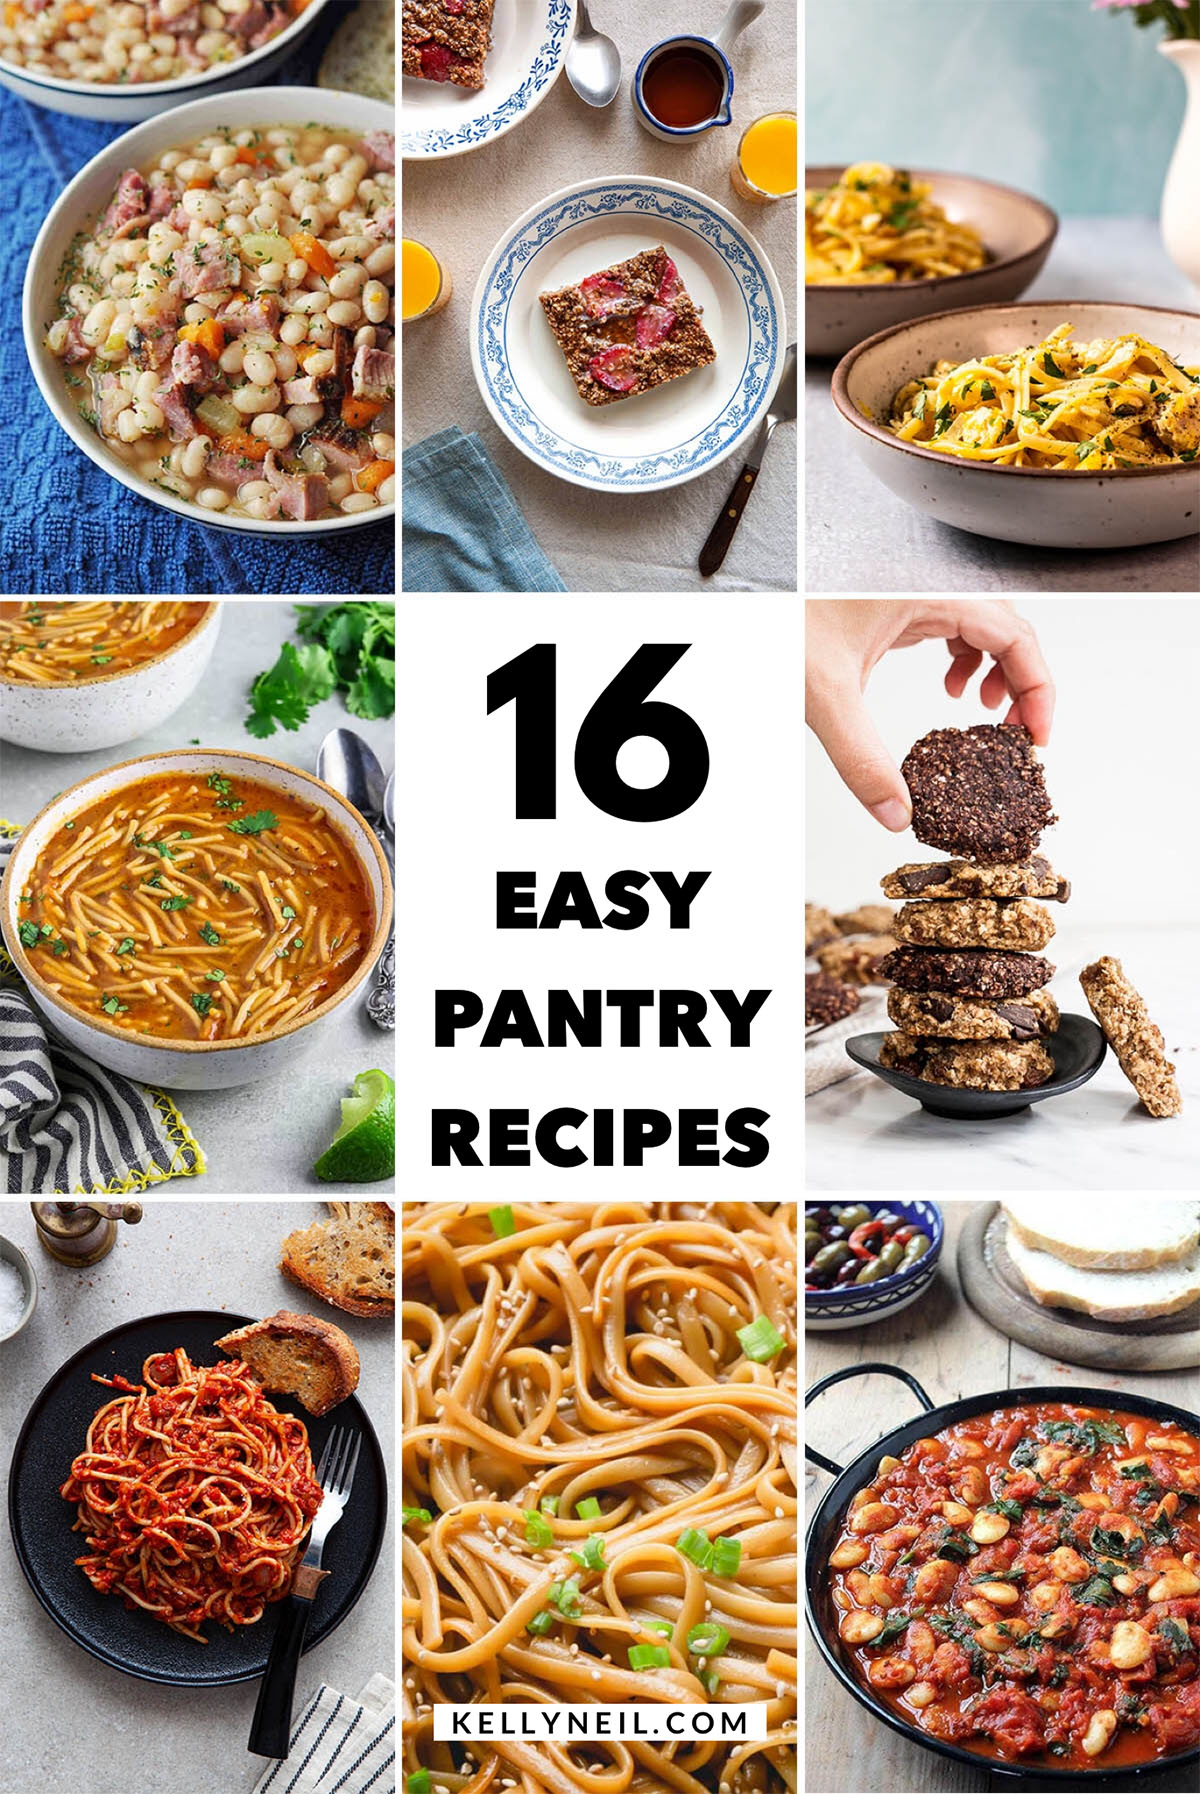 Collage for post about 16 Easy Pantry Recipes.